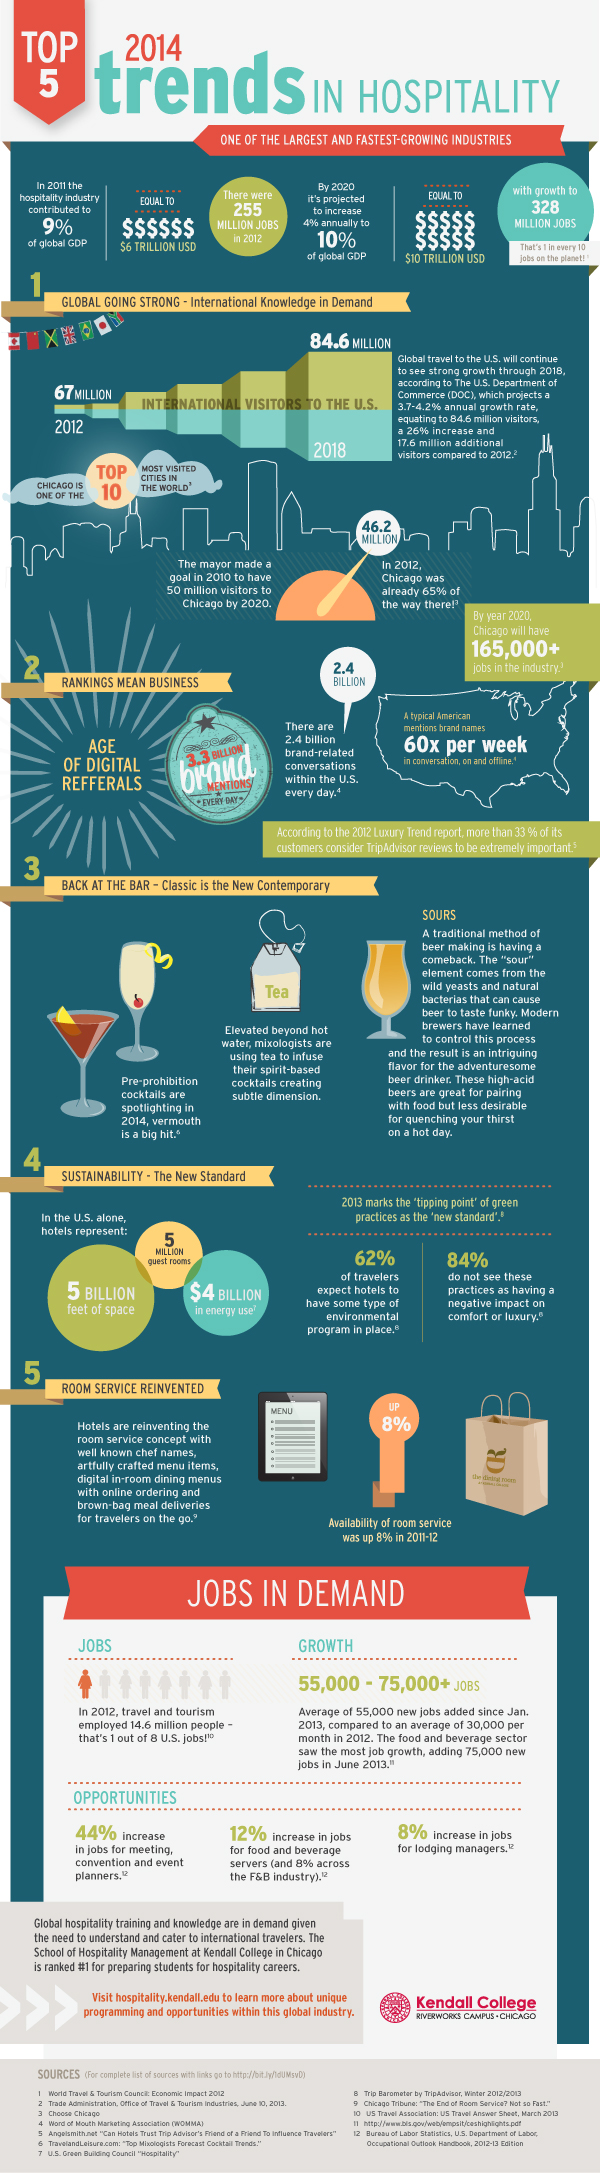 top-5-trends-in-hospitality-for-2014-infographic